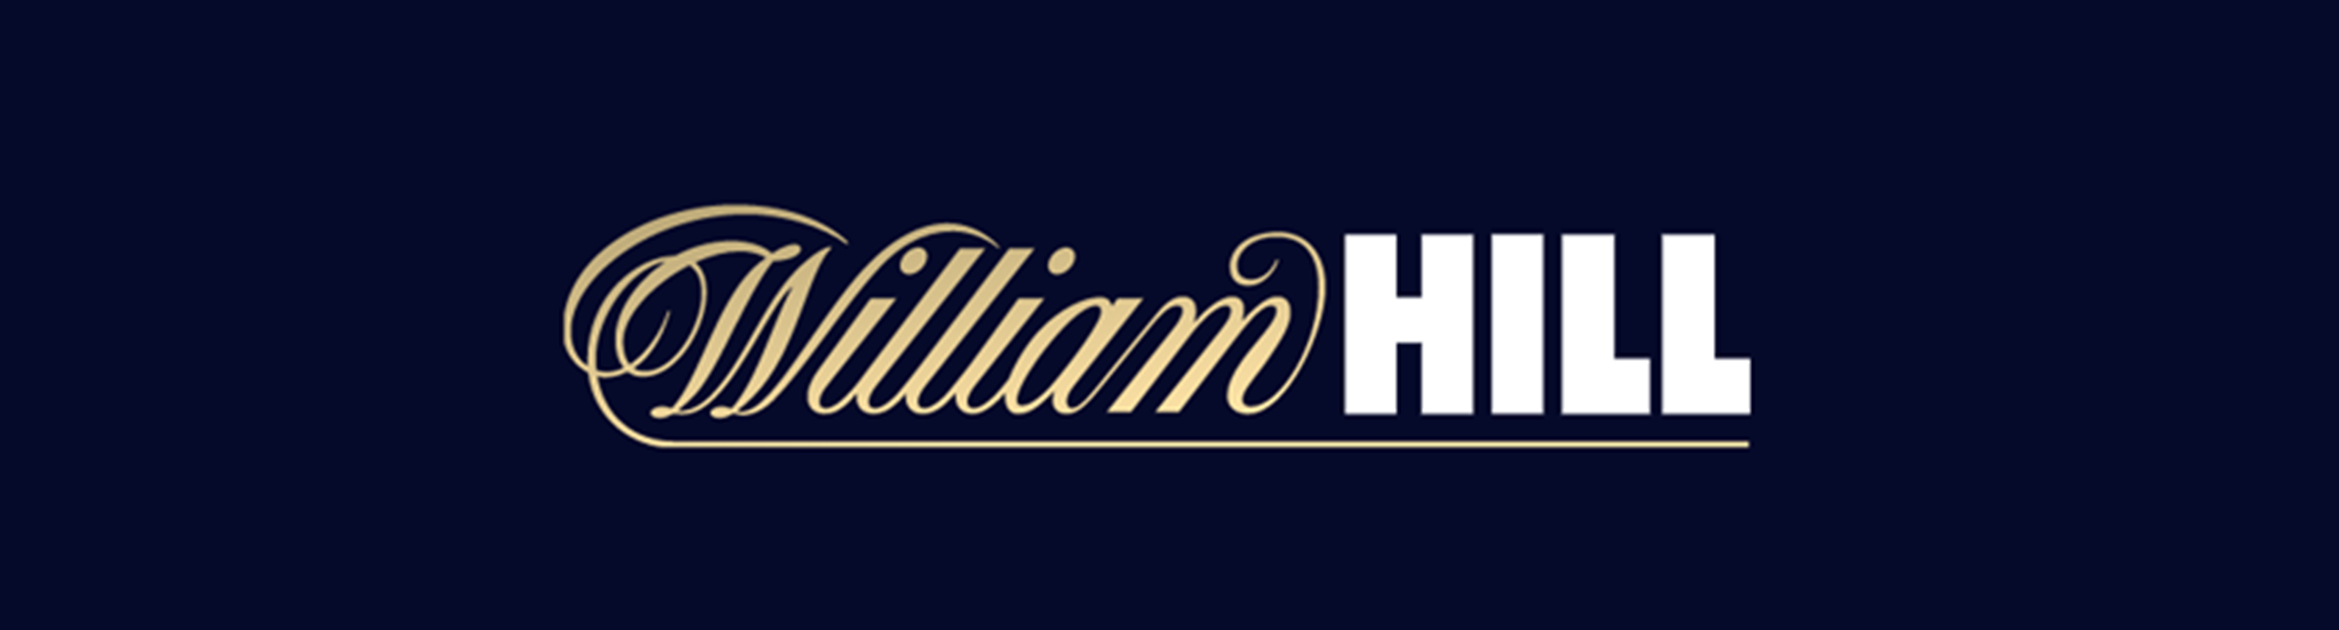 william hill contact number